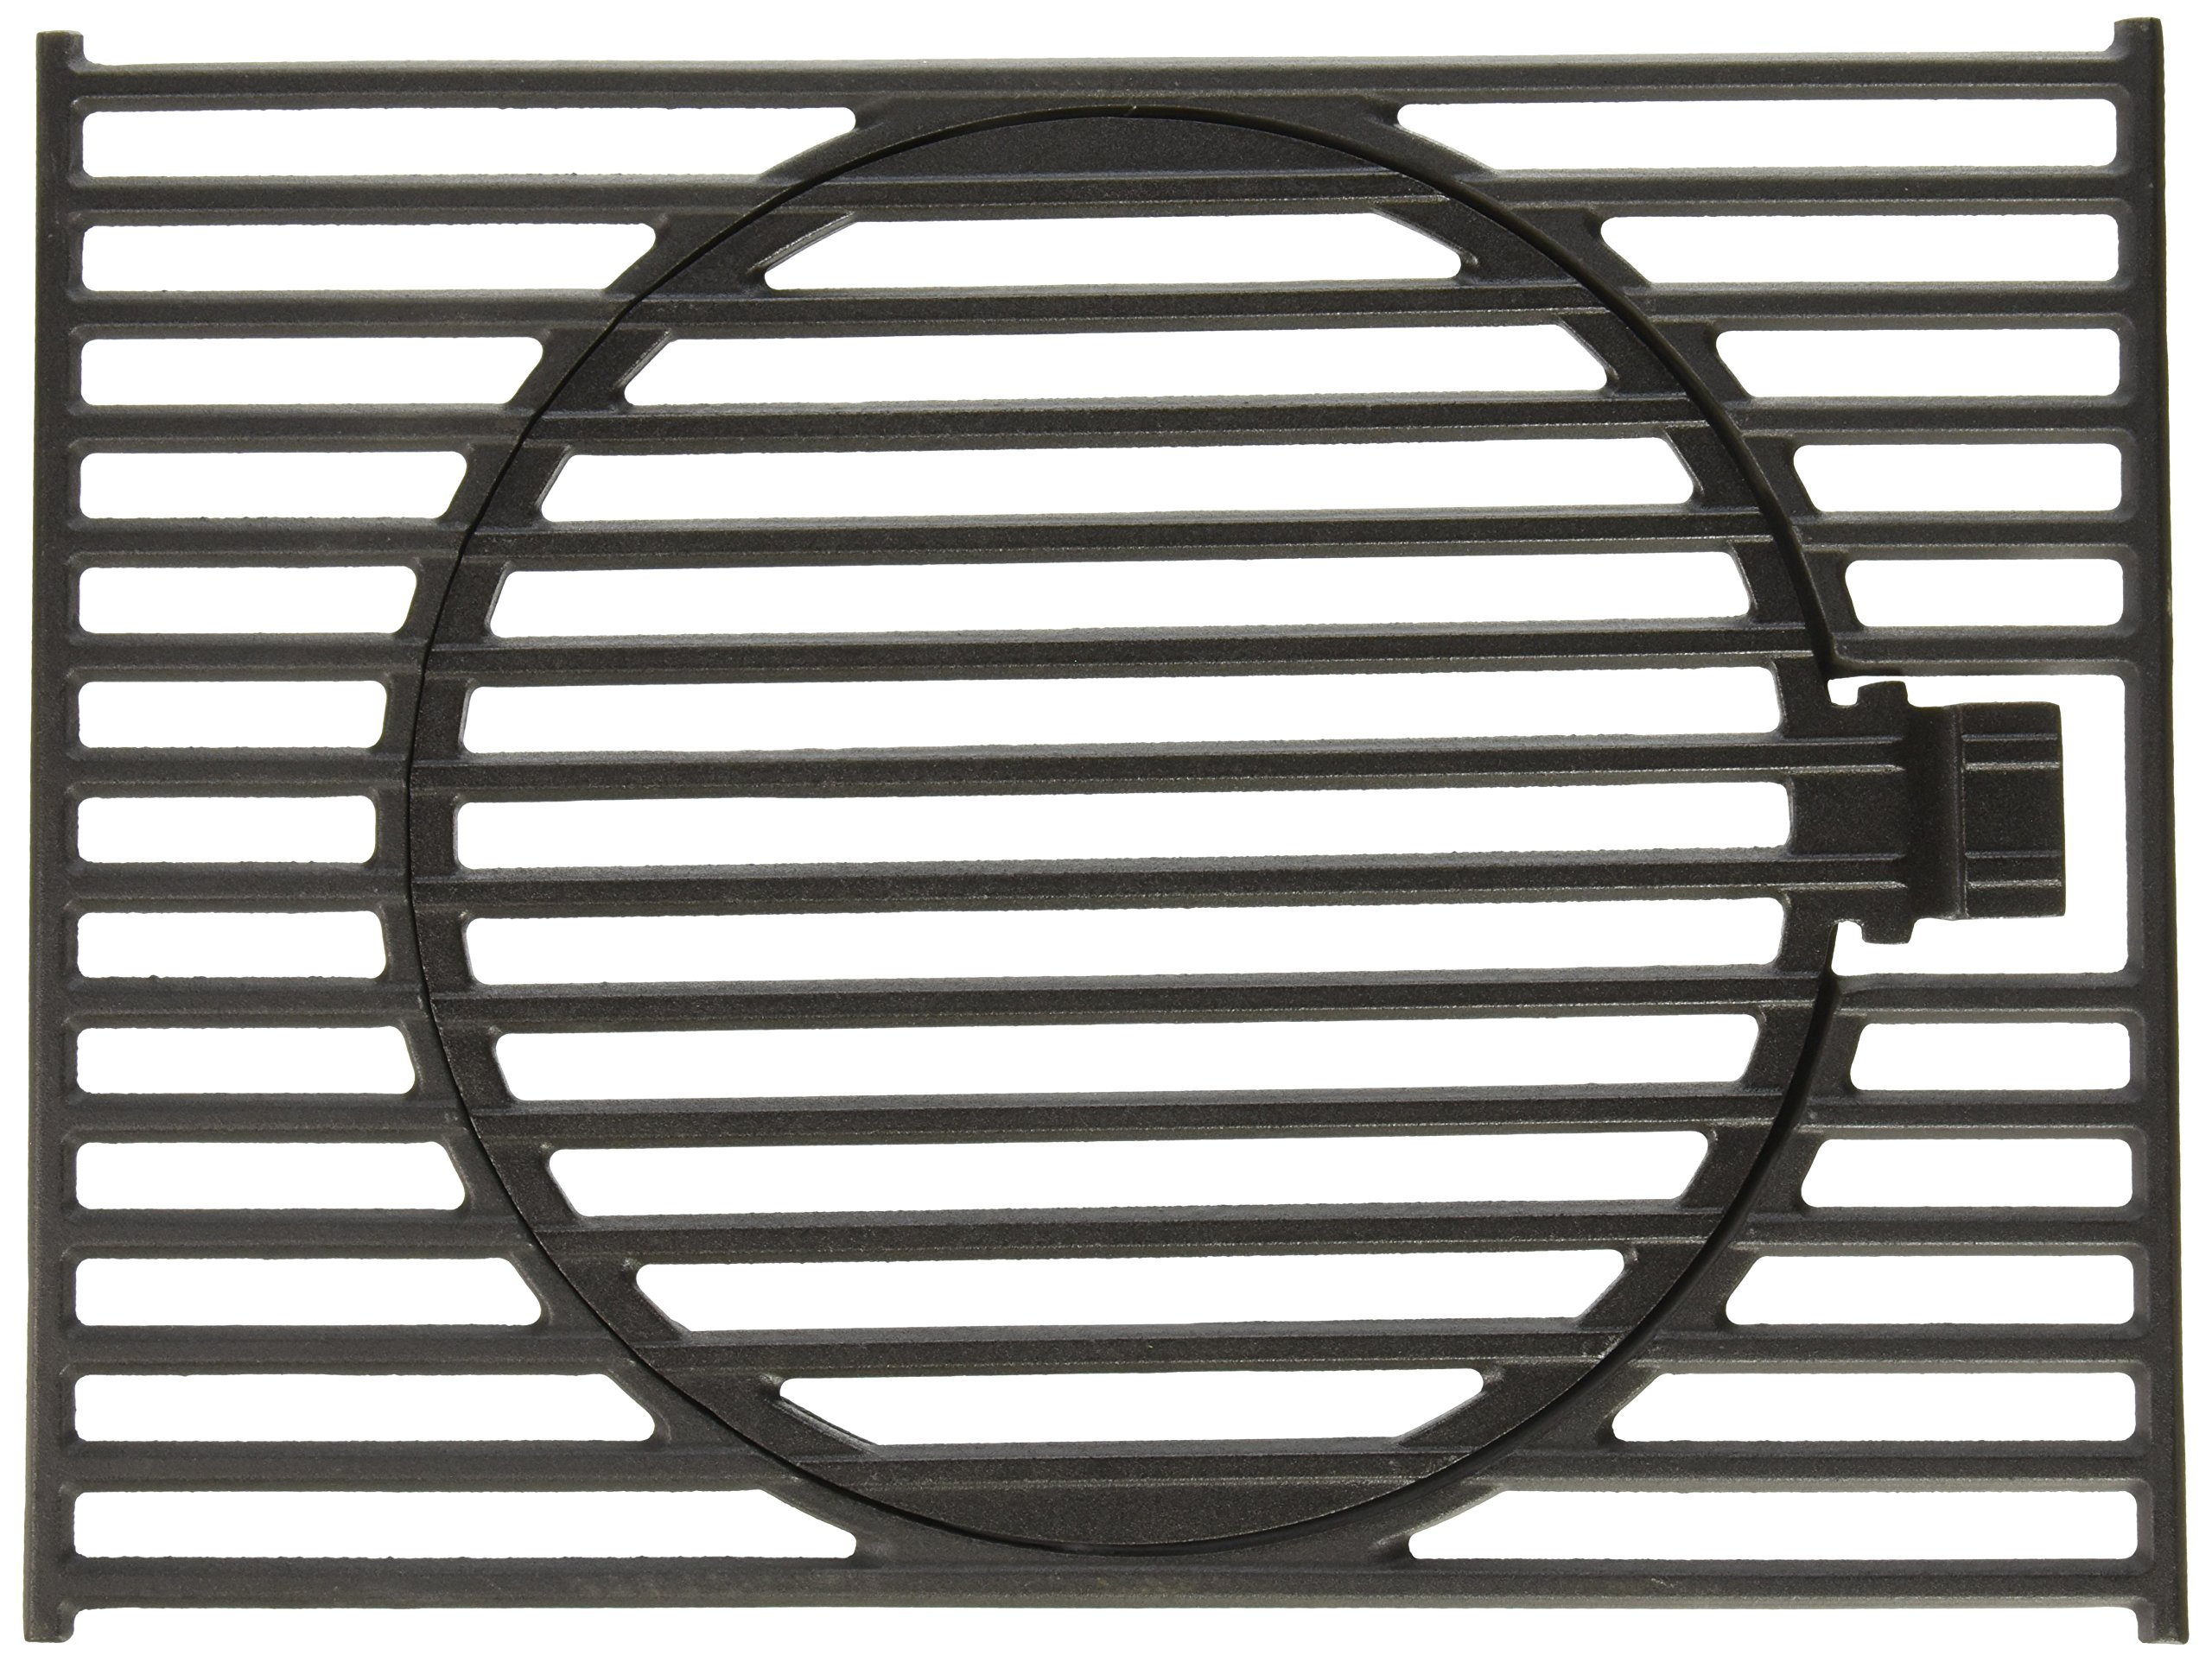 Music City Metals 64332 Matte Cast Iron Cooking Grid Replacement for Gas Grill Model Stok SGP4330SB, Set of 2 by Music City Metals